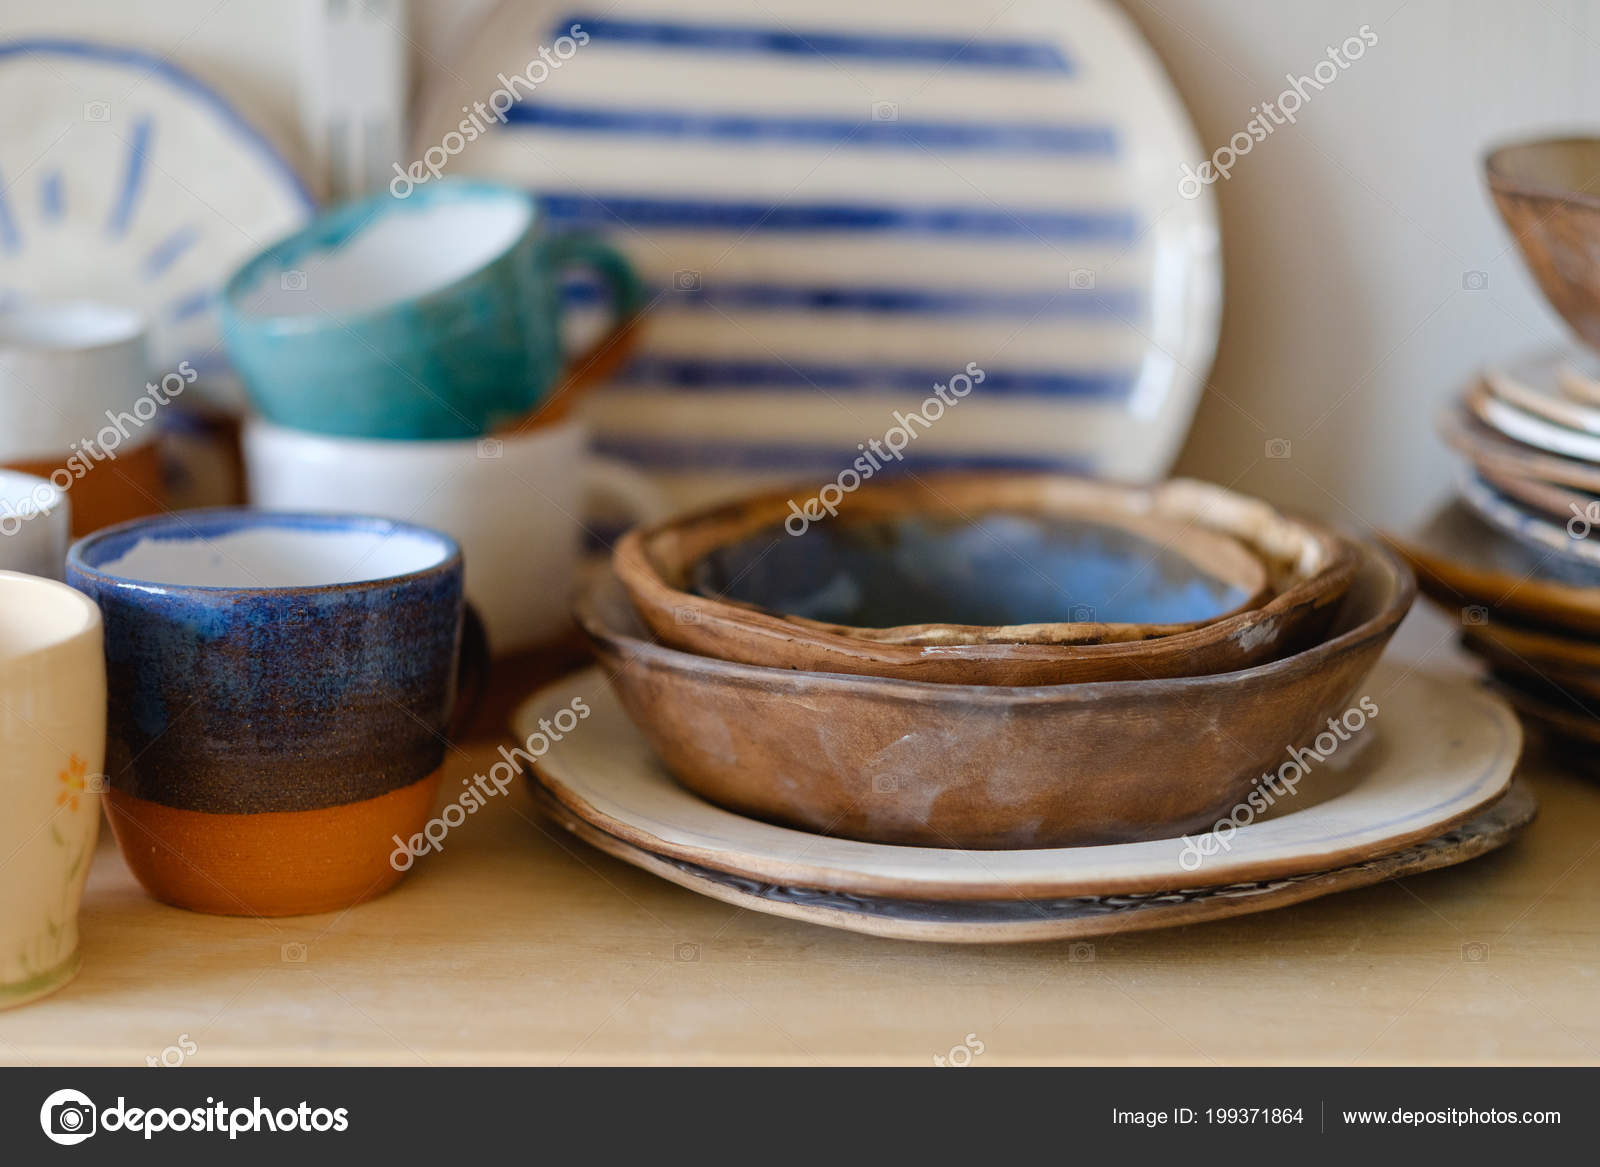 Handmade Crockery Handmade Crockery Artisan Clay Plate Bowl Cup Mug Stock Photo C Golubovy 199371864